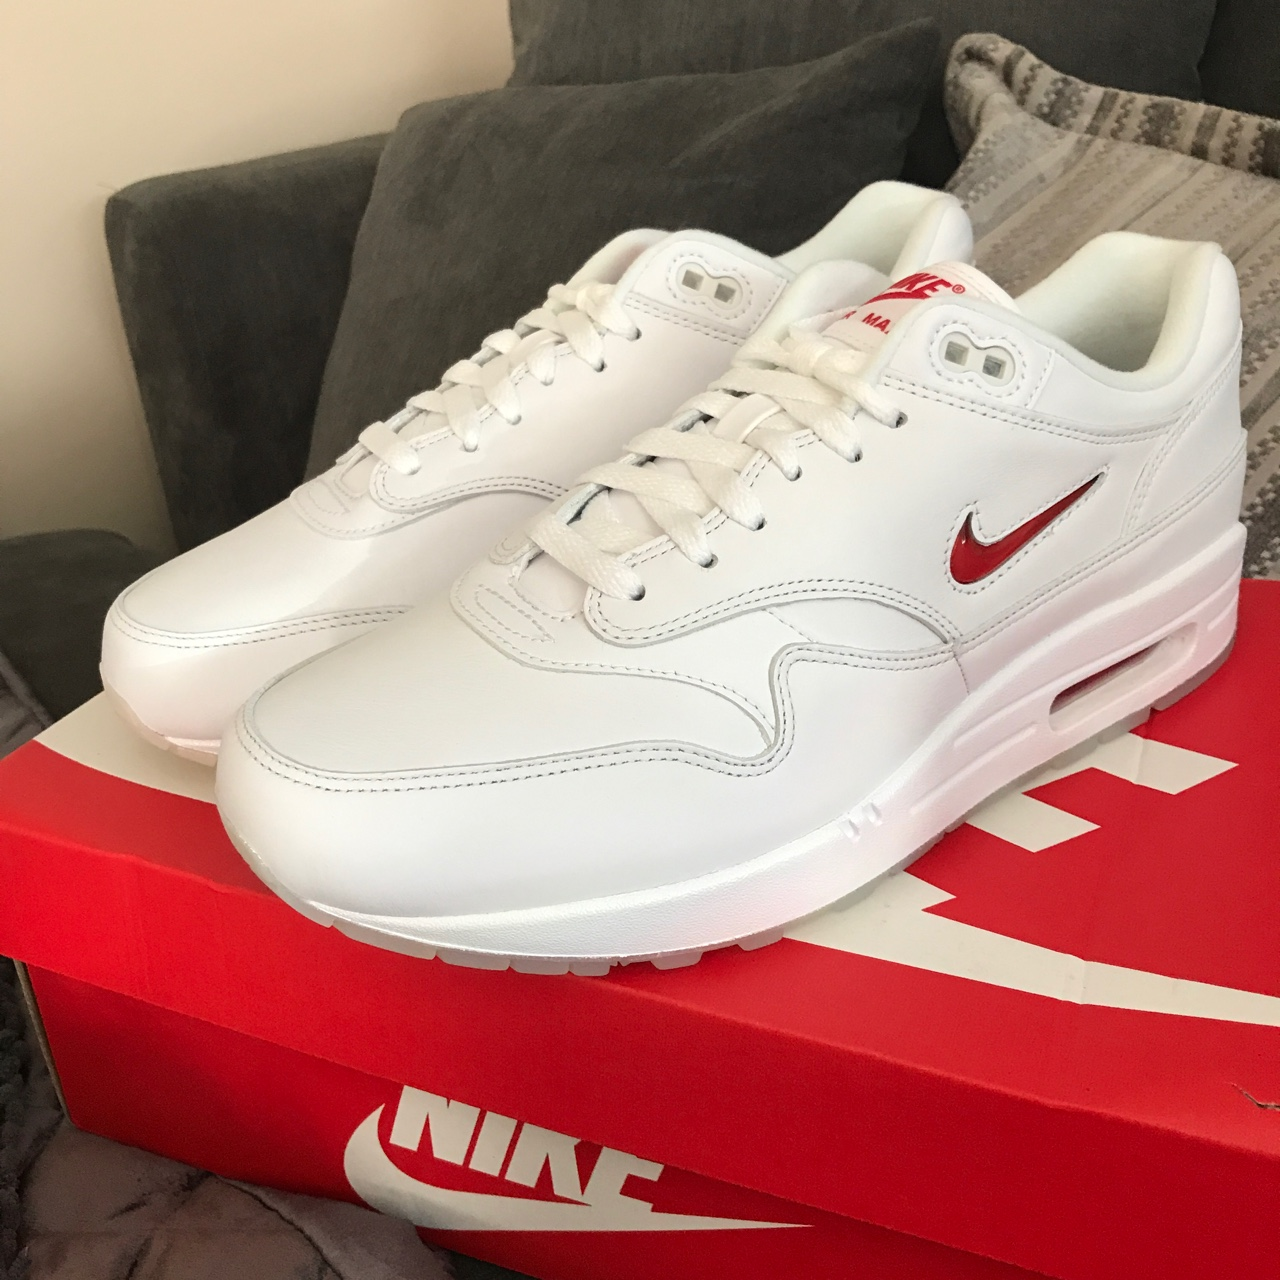 NIKE AIR MAX 1 OG RUBY RED JEWEL SIZE 9 BOXED WITH Depop